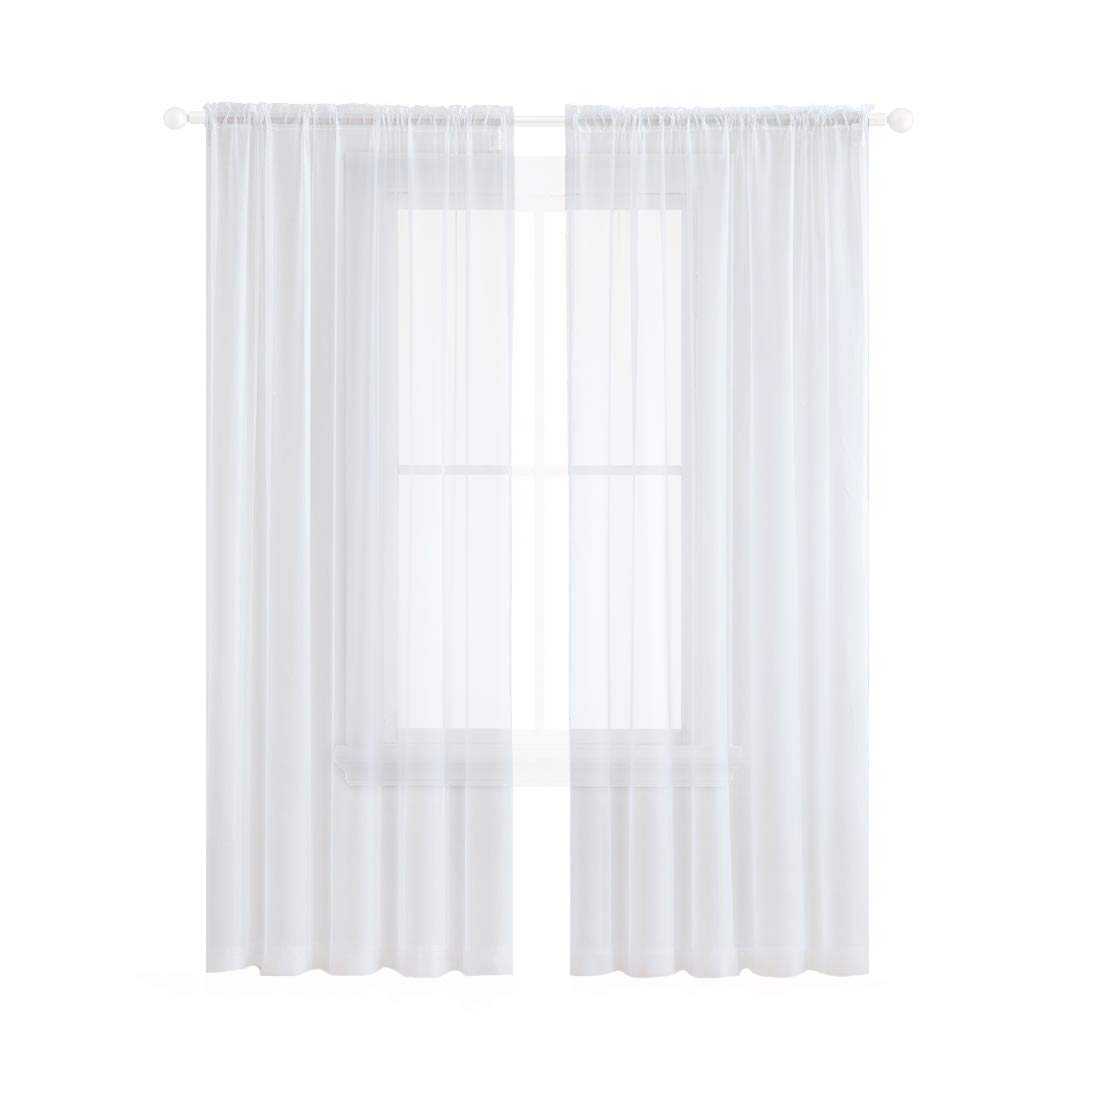 Anjee Sheer White Curtains, 96 inches Long Voile Curtain, 2 Panels Semi Sheer Curtain for Living Room, Dining Room, Bedroom, 54 x 96 Inches